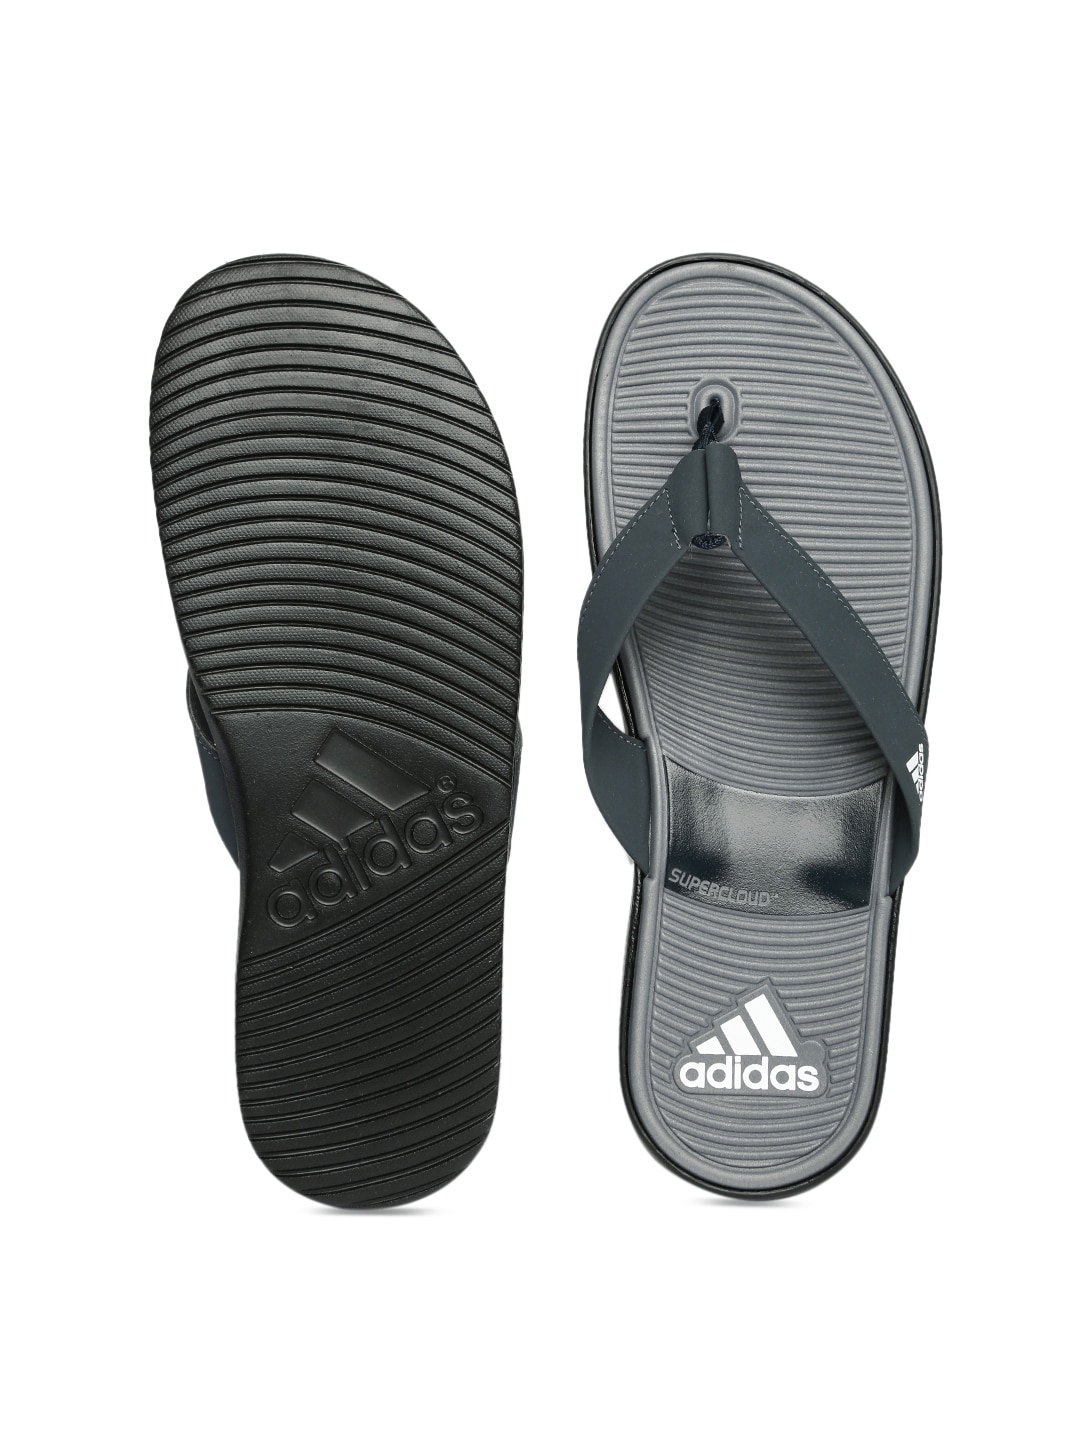 adidas acupressure slippers